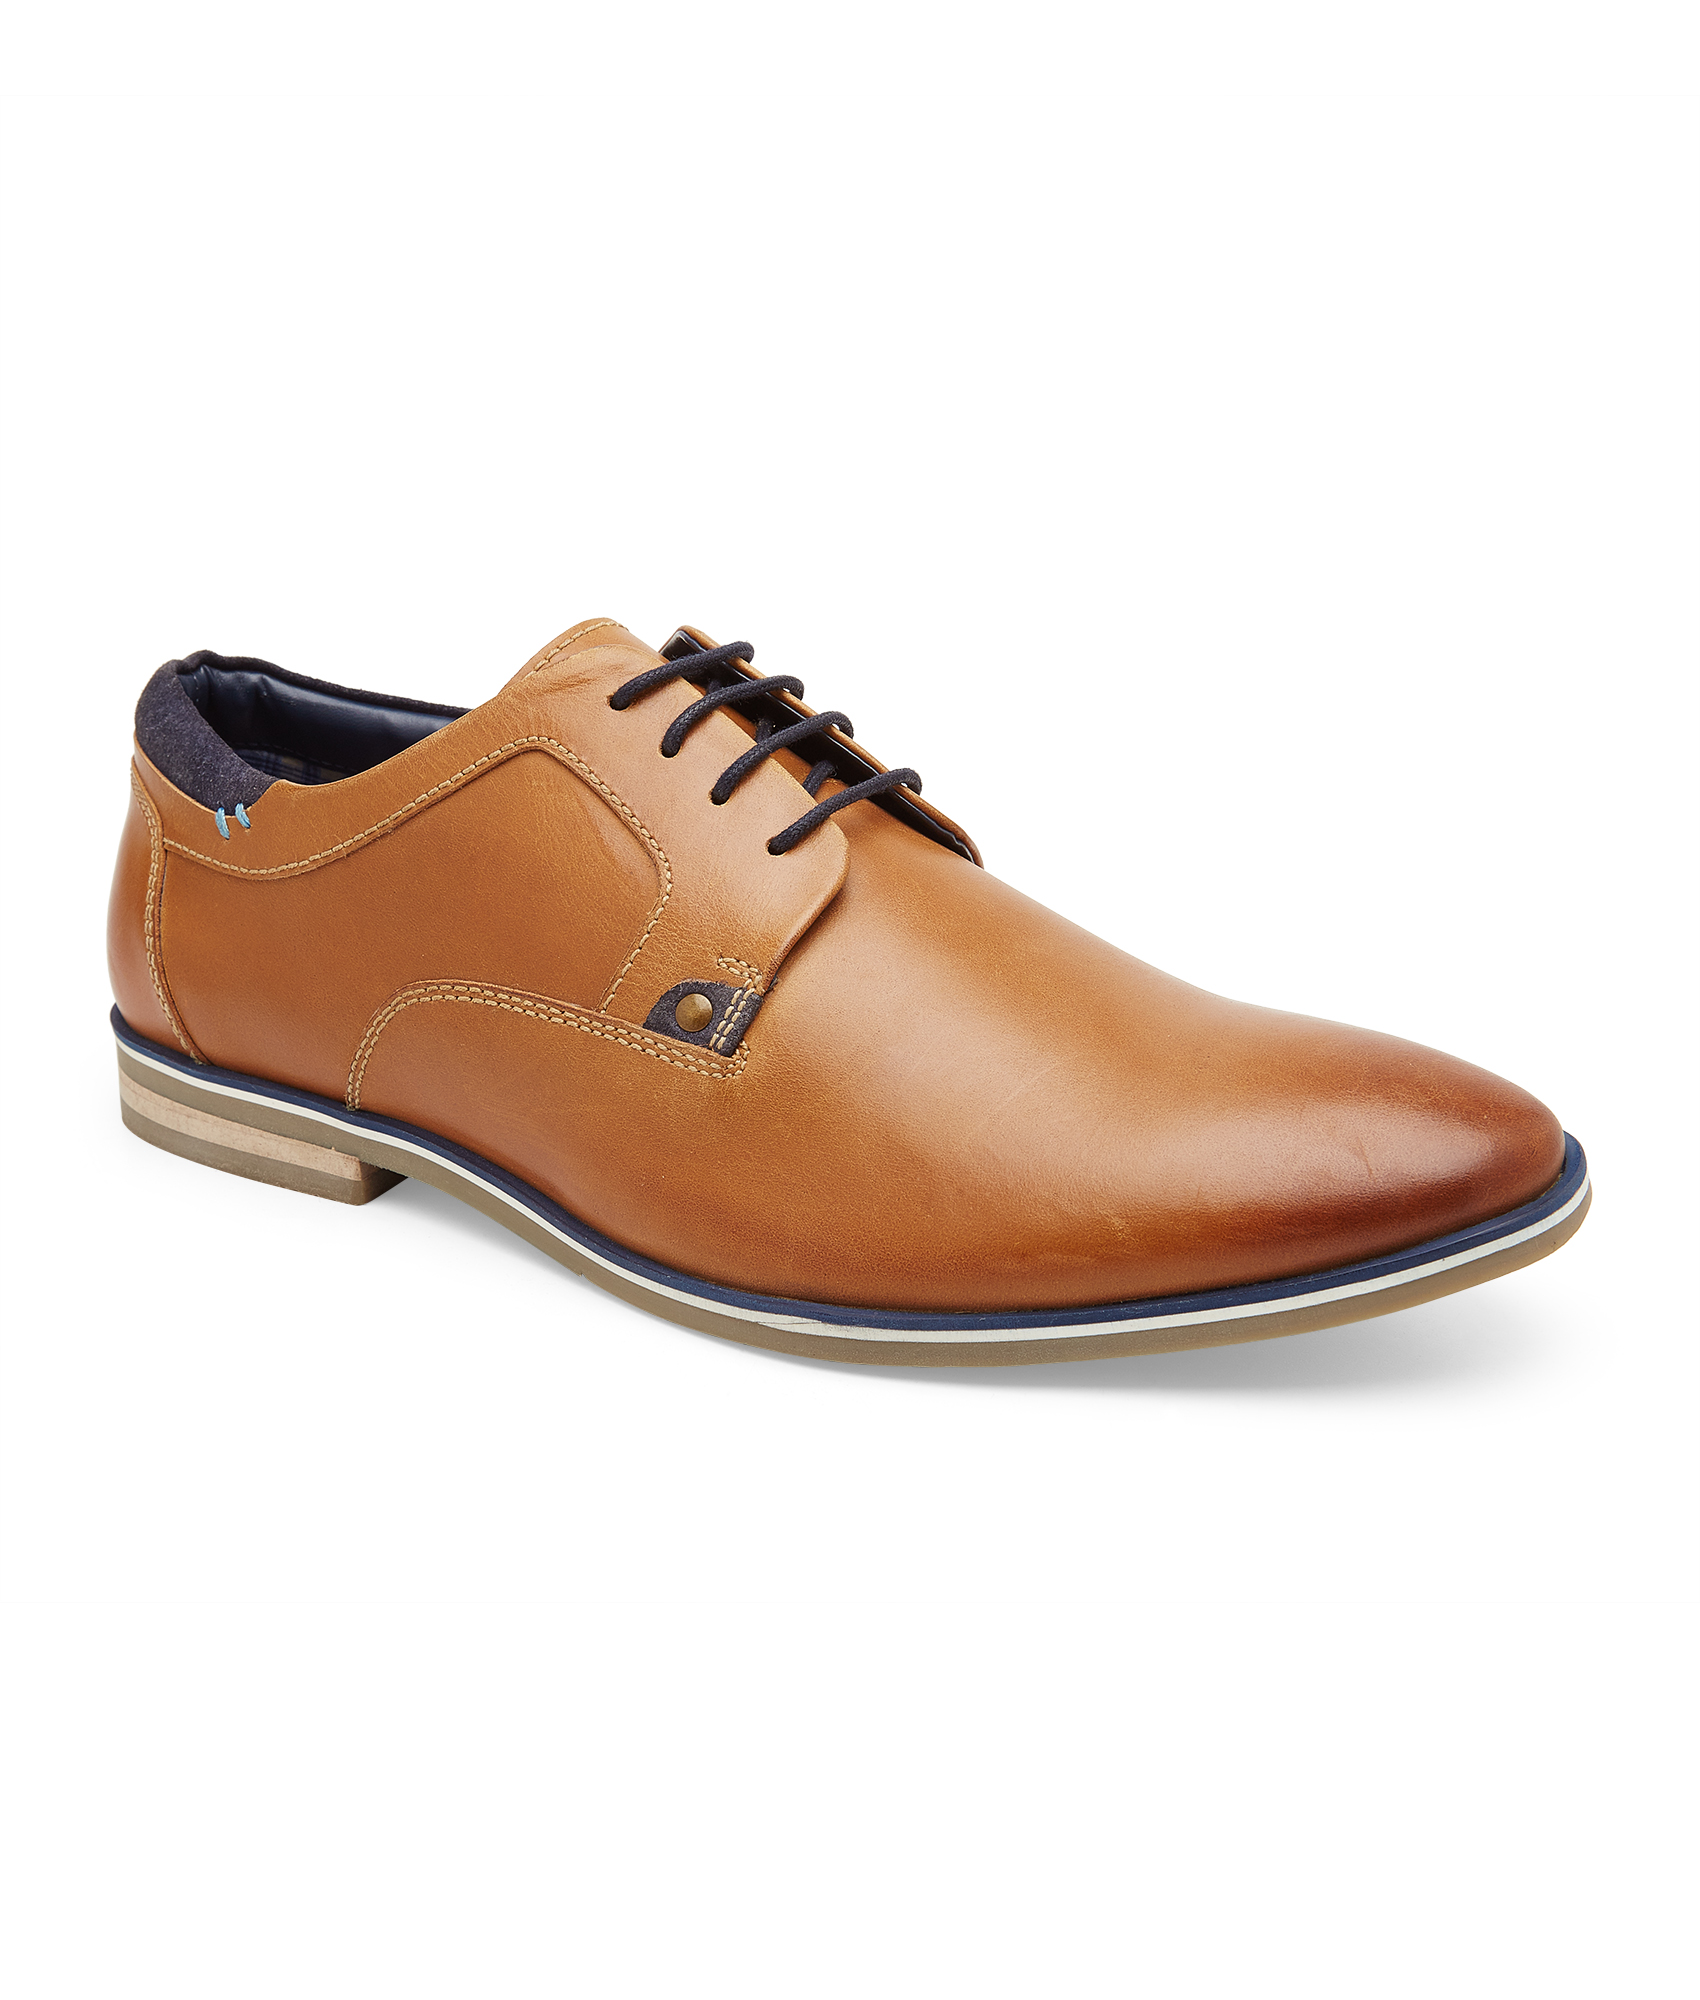 mens brogues tan